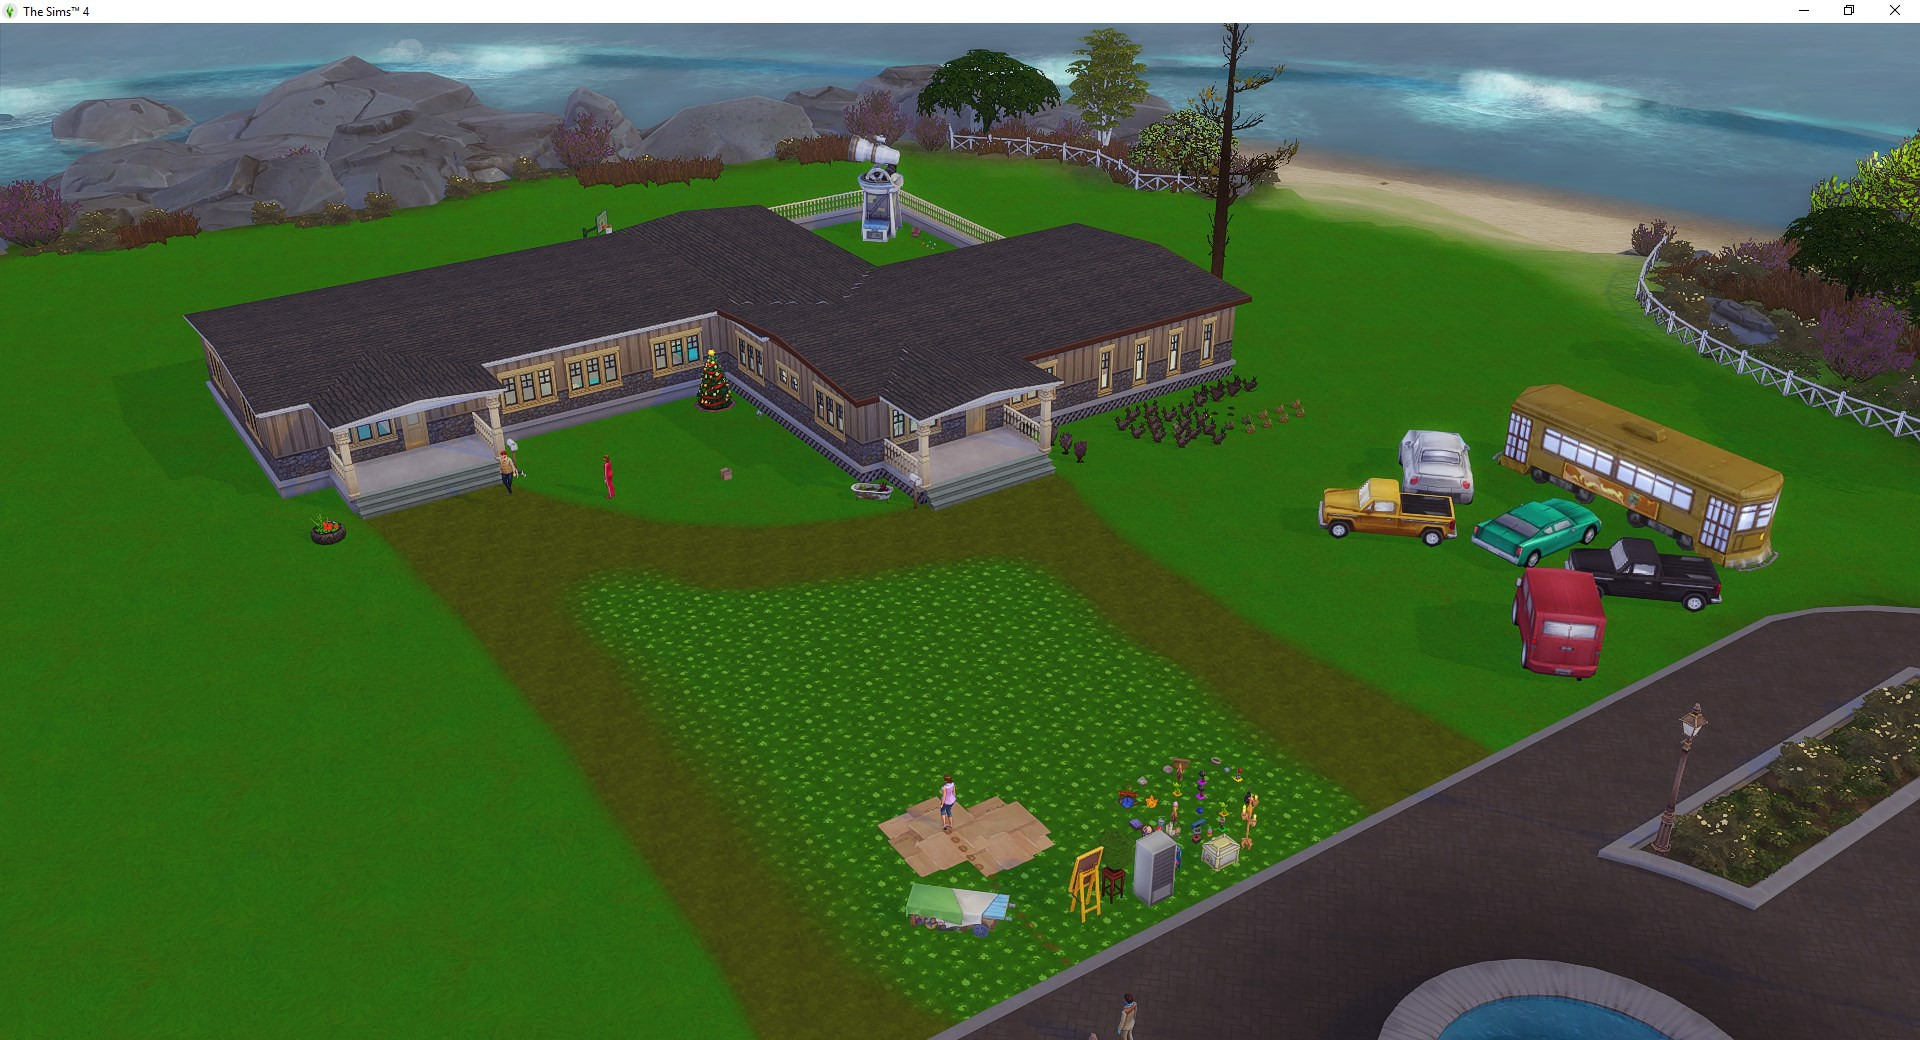 2019-09-21 13_54_18-The Sims™ 4